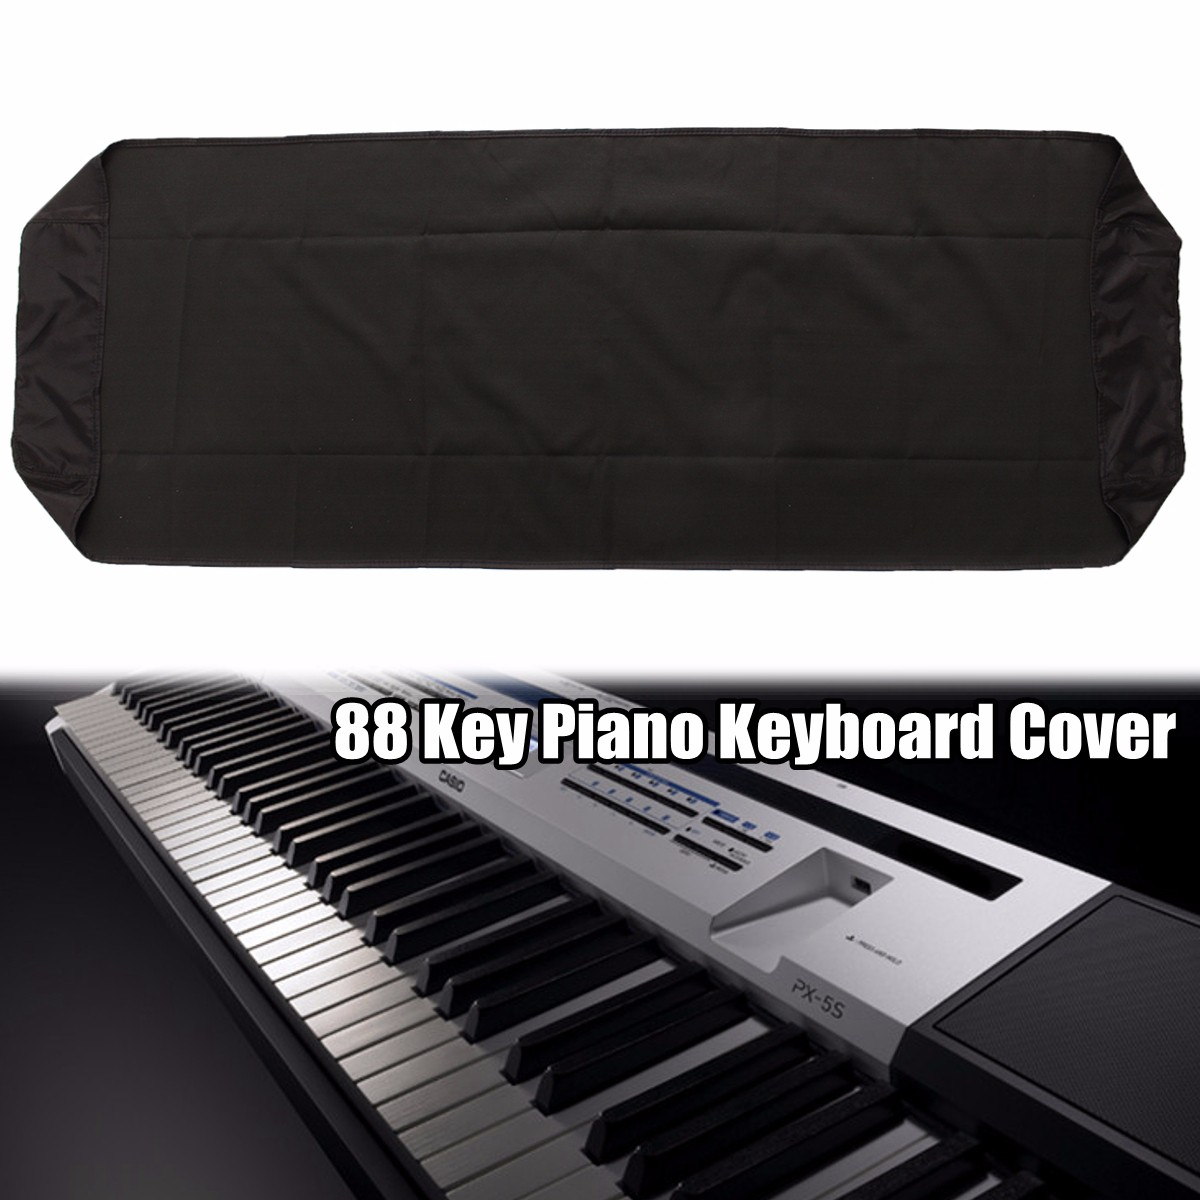 88 Key Electronic Piano Keyboard Cover On Stage Dustproof Lightweight Thickened by